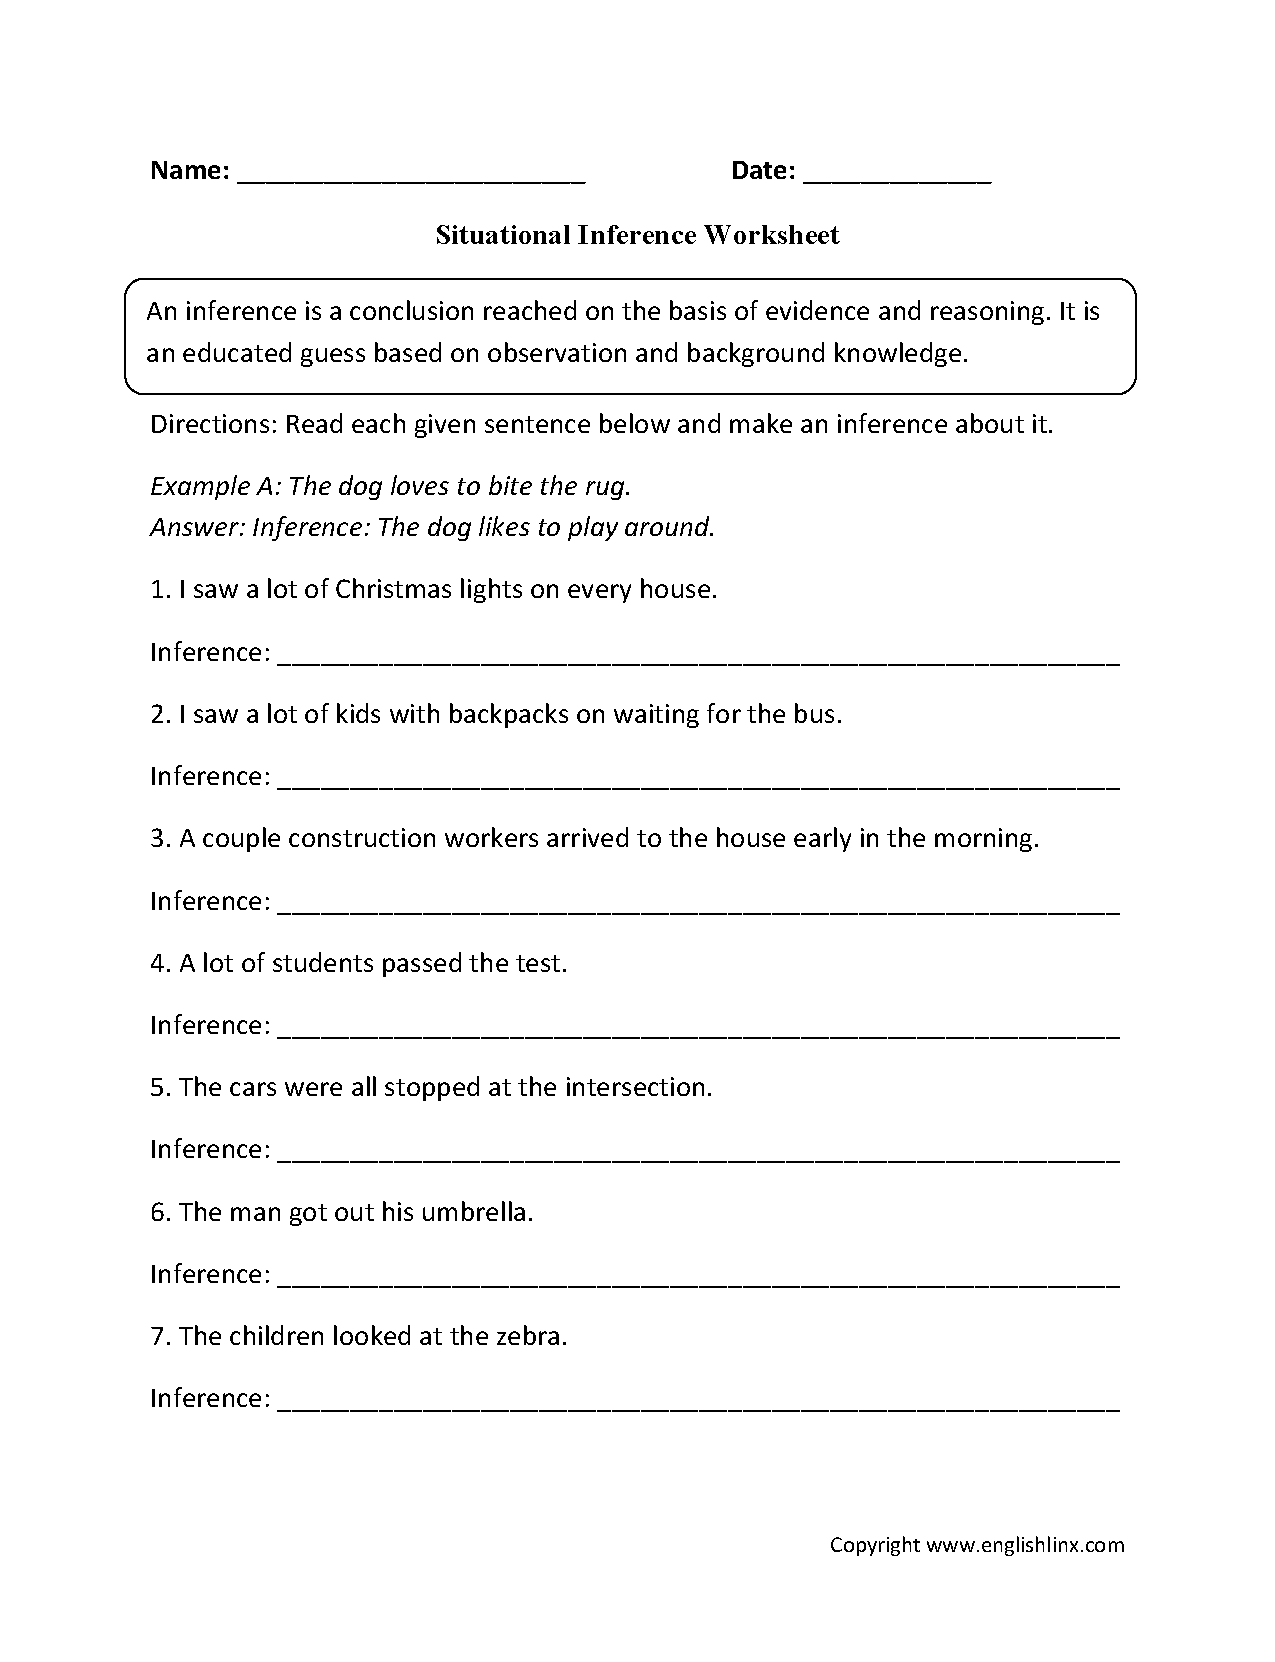 small resolution of Situational Inference Worksheets   Reading comprehension worksheets